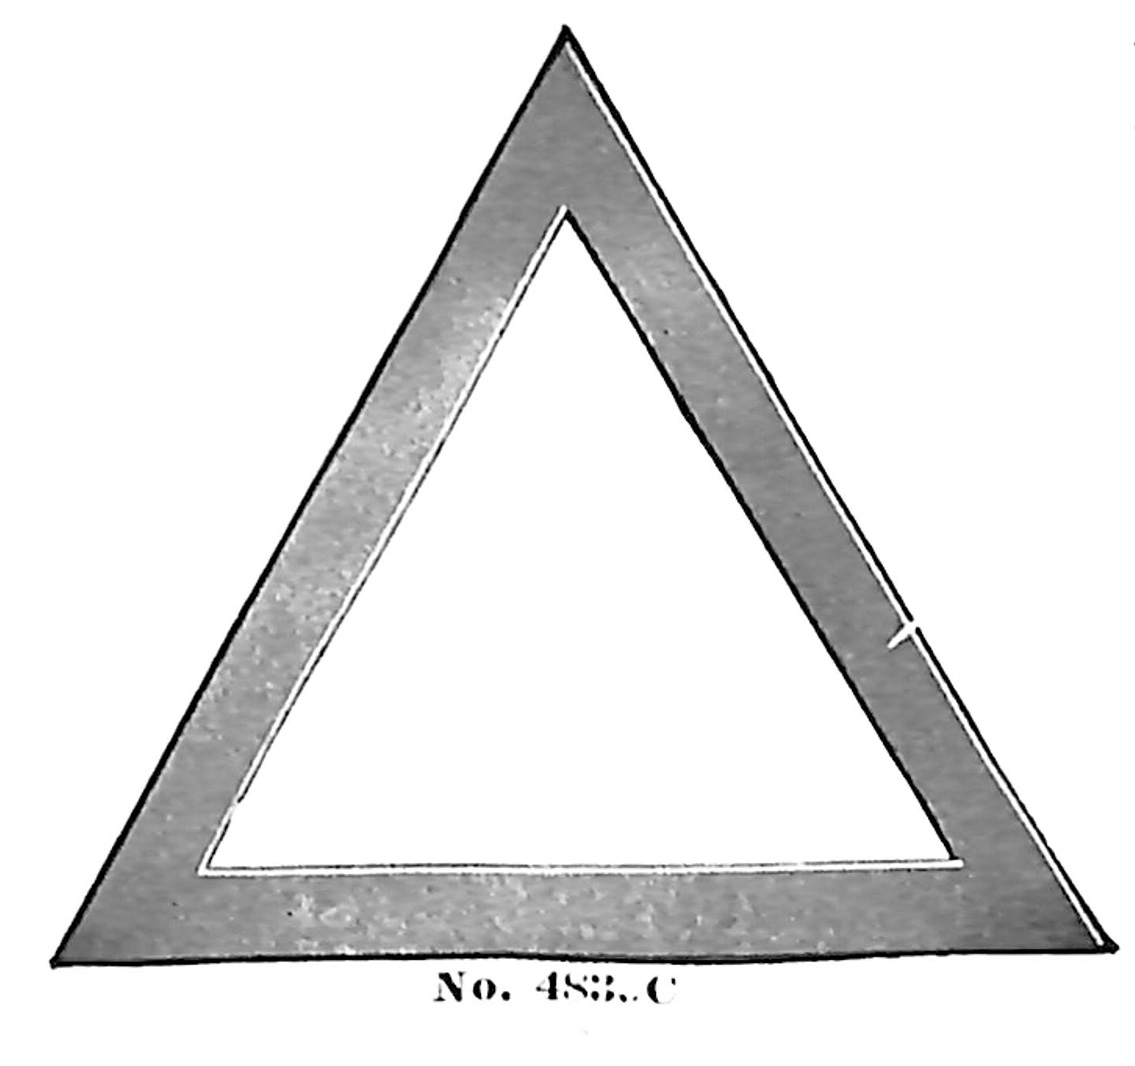 Triangle no. 4839C